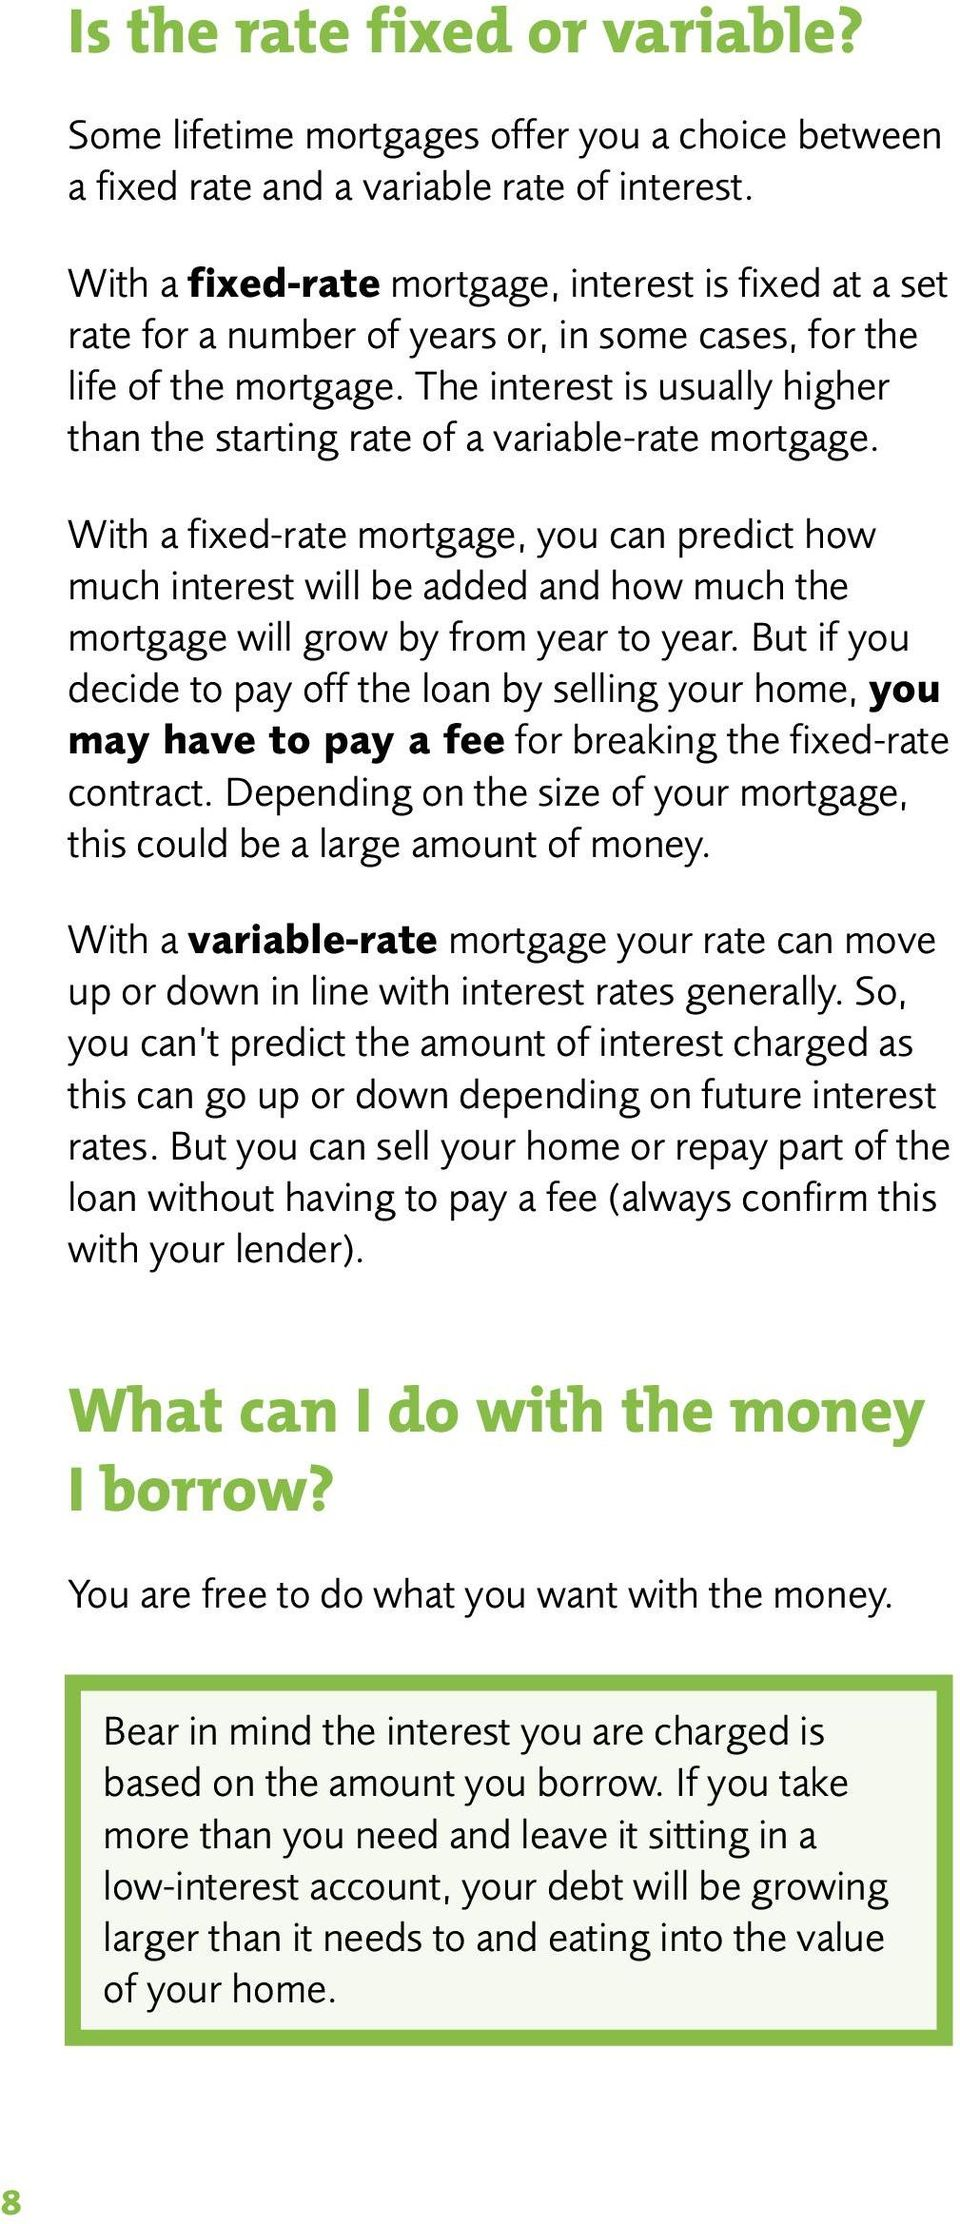 The interest is usually higher than the starting rate of a variable-rate mortgage.